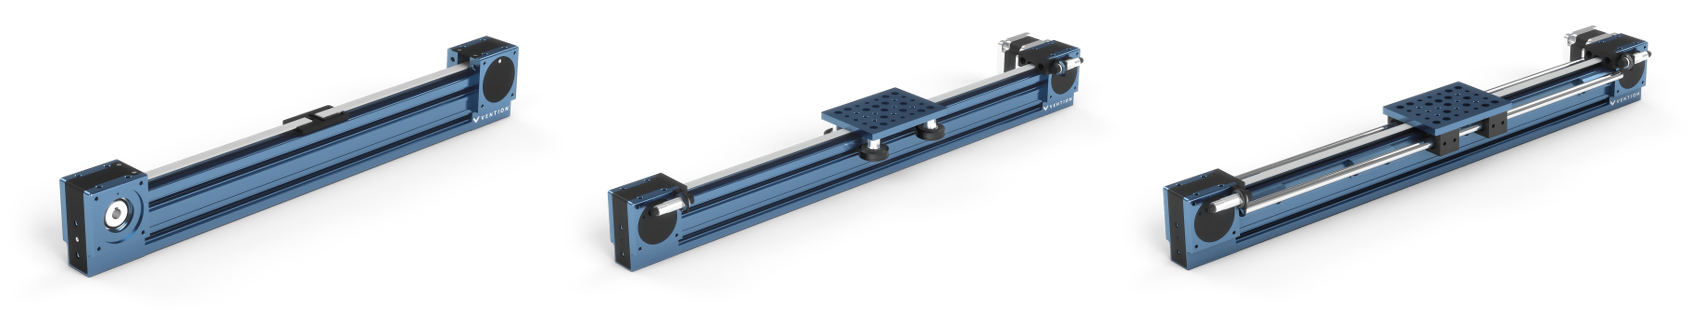 Figure 2: View of the Timing Belt Actuator showing possible linear guide configurations with either roller whees, MO-LM-001-0027/0028 or linear bearings MO-LM-0140-XXXX and MO-LM-010-0001.